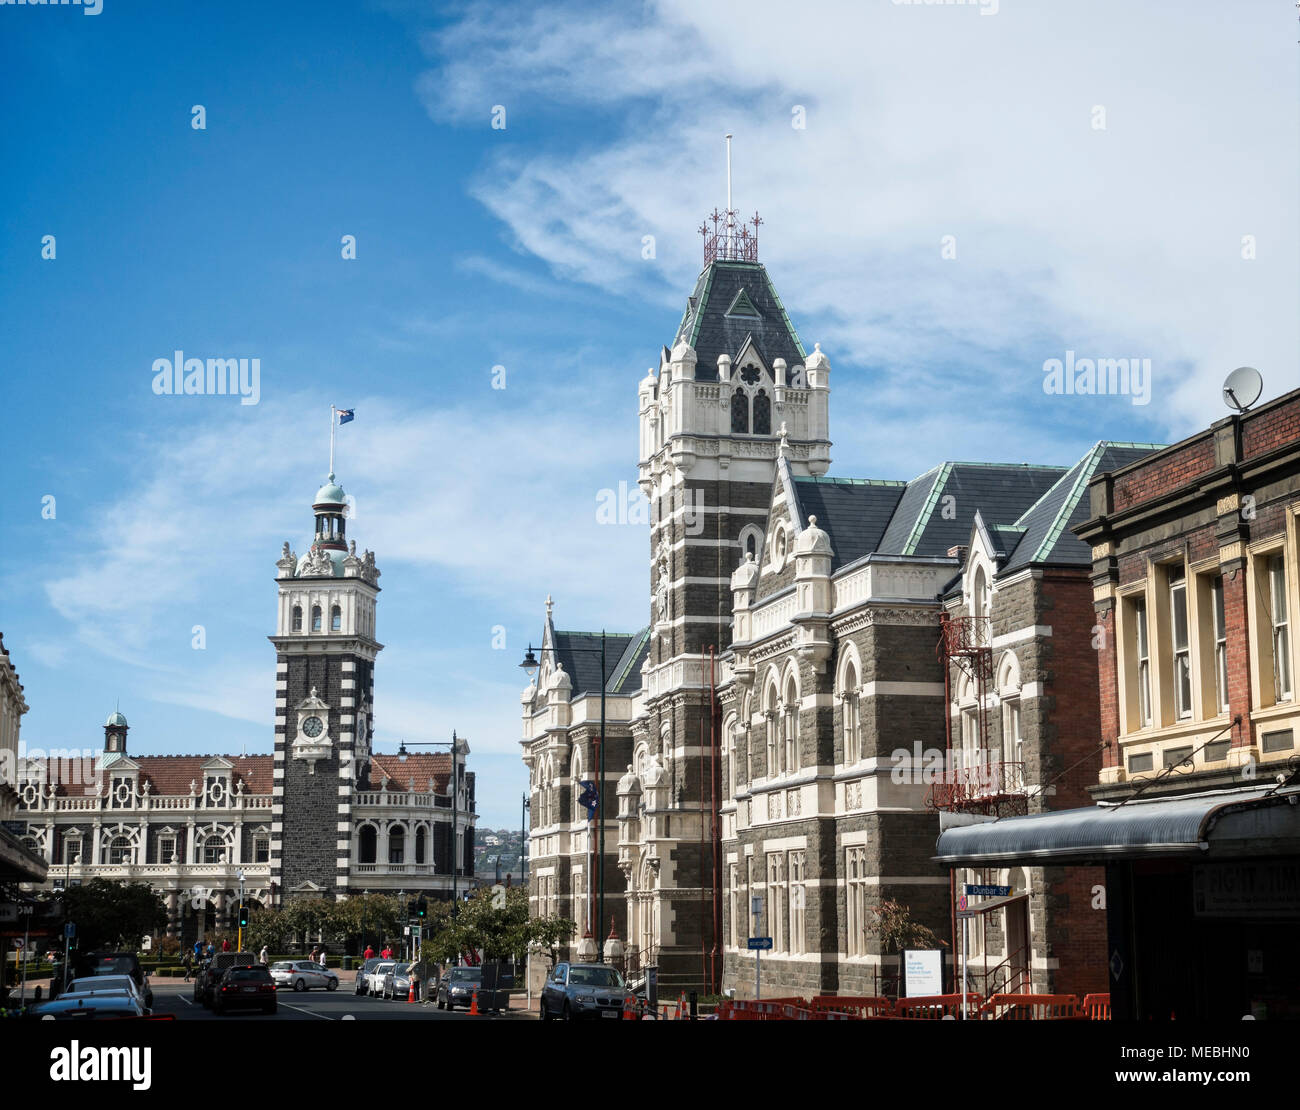 The Department for Courts and train station, Dunedin, South Island, New Zealand. - Stock Image